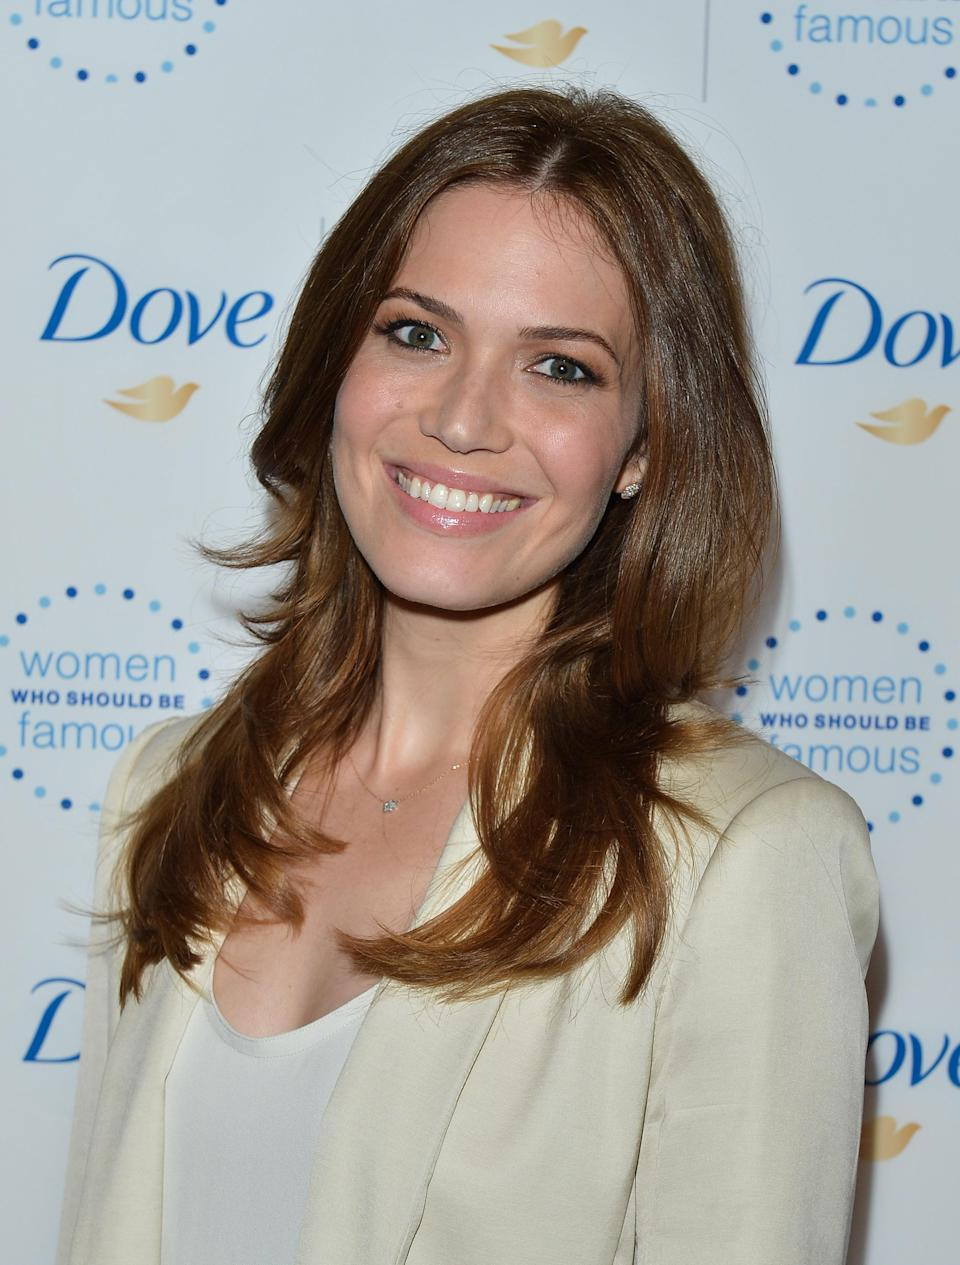 "<b>Mandy Moore:</b> ""The news of the horrific tragedy in Aurora literally takes me breath away. All thoughts and prayers are with victims and their families."" (Photo by George Pimentel/Getty Images)"